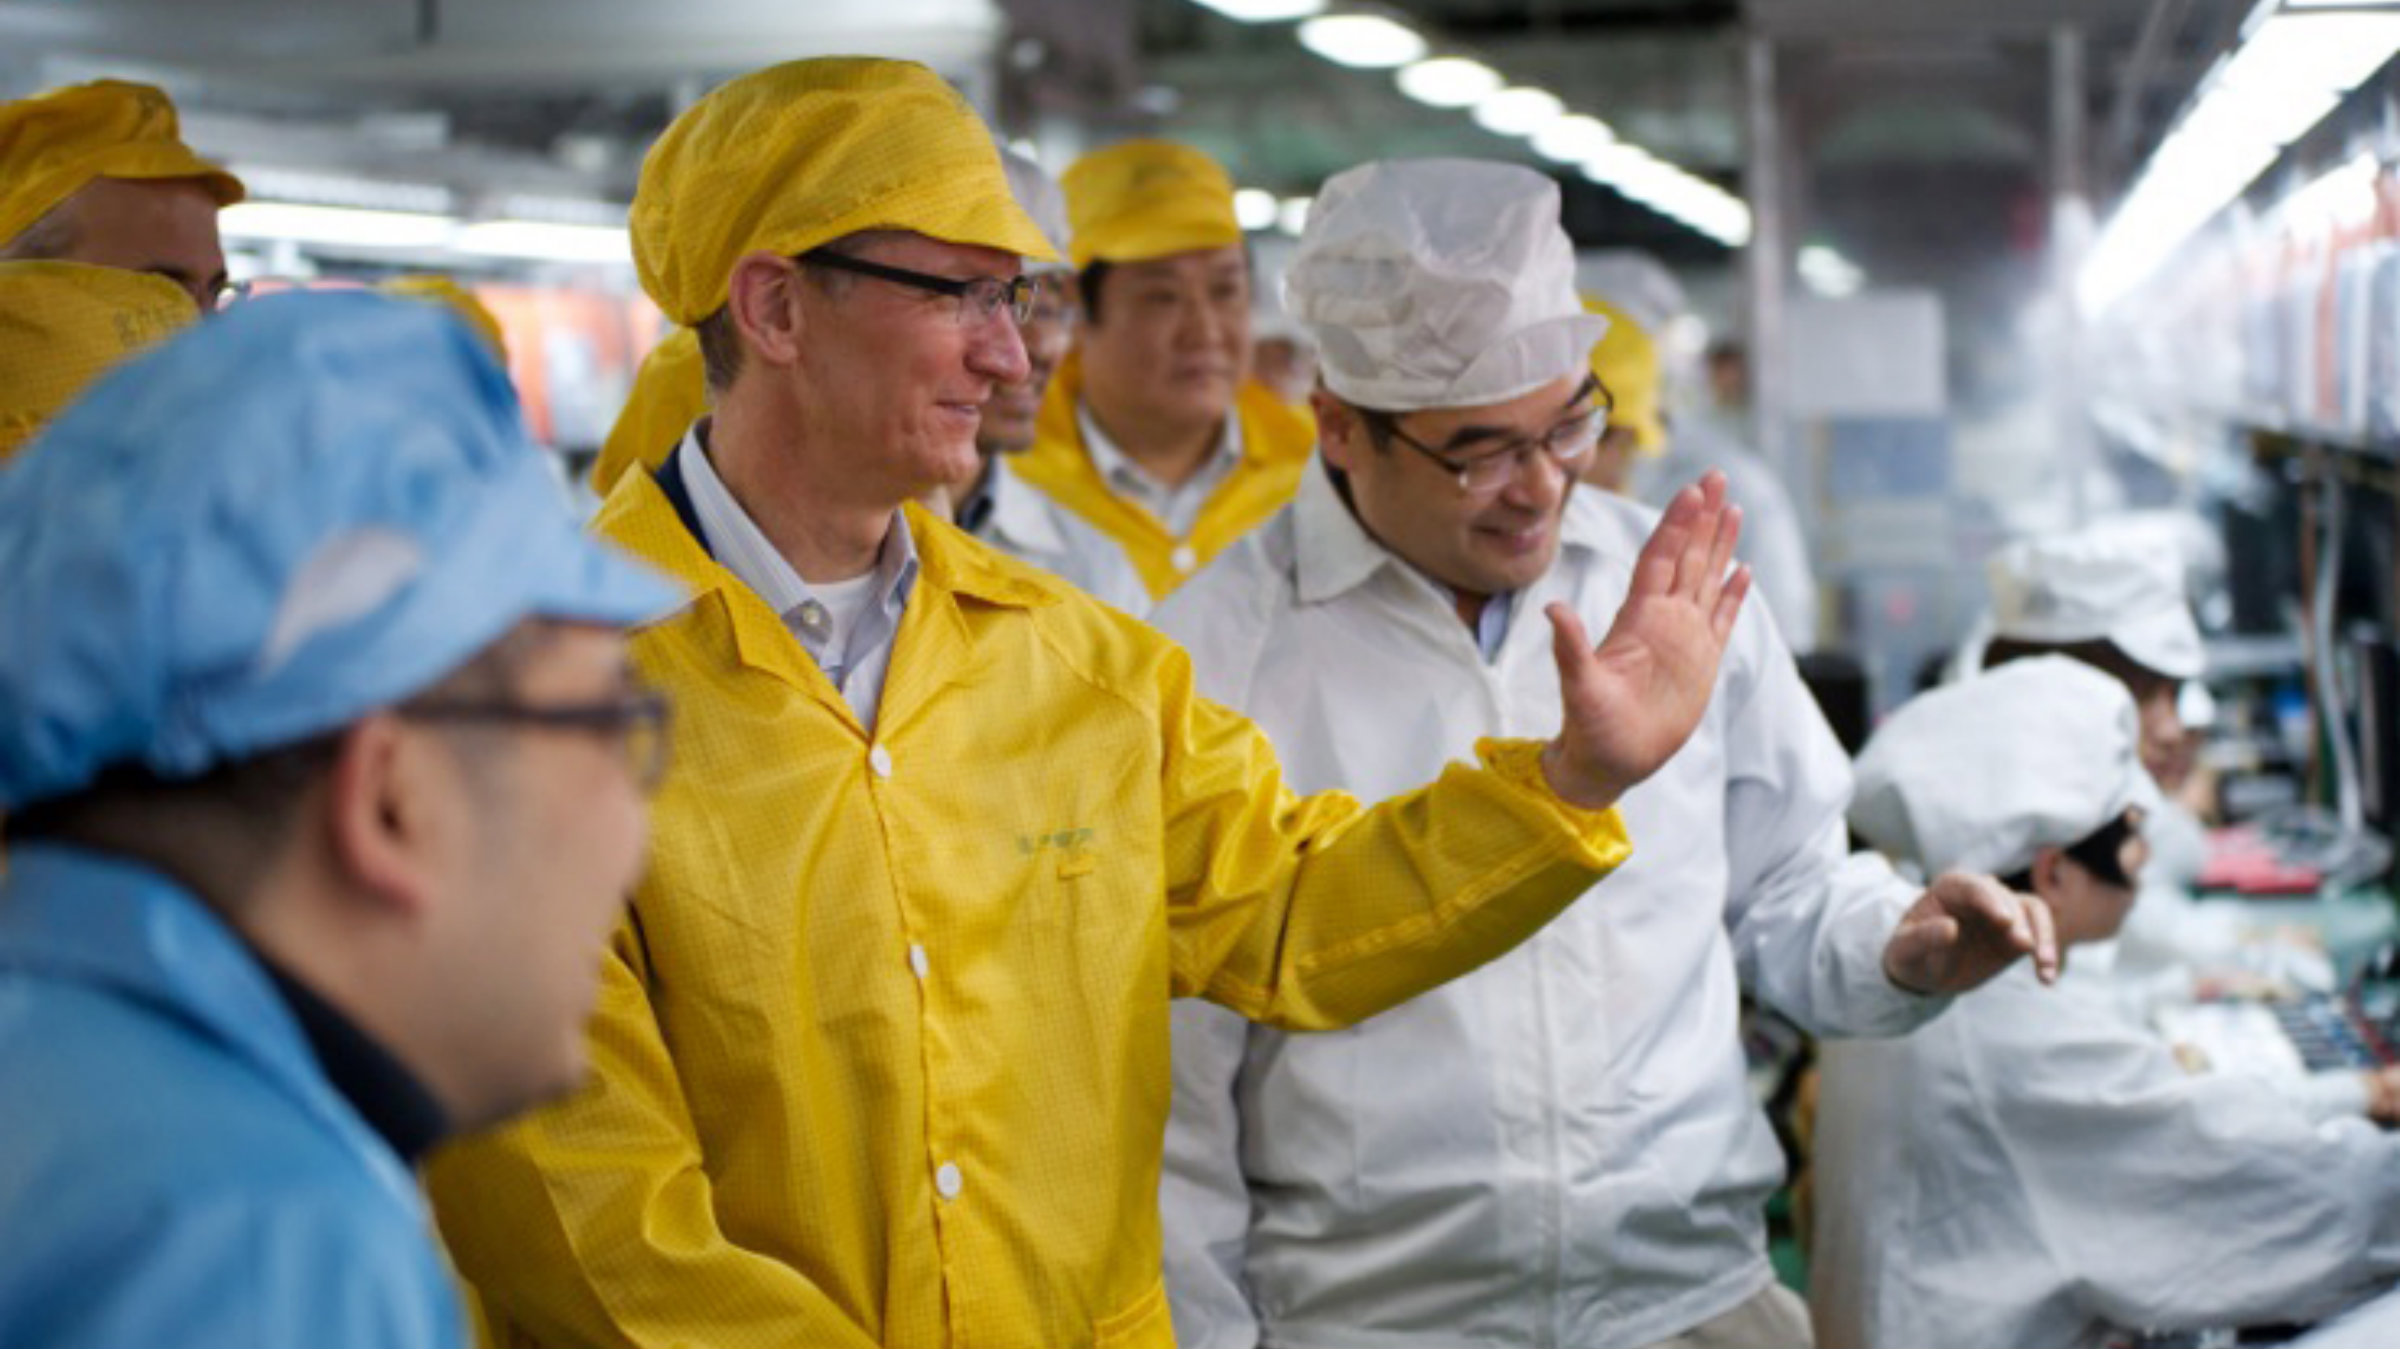 Tim Cook watches the (subsidized?) iPhone sausages getting made.